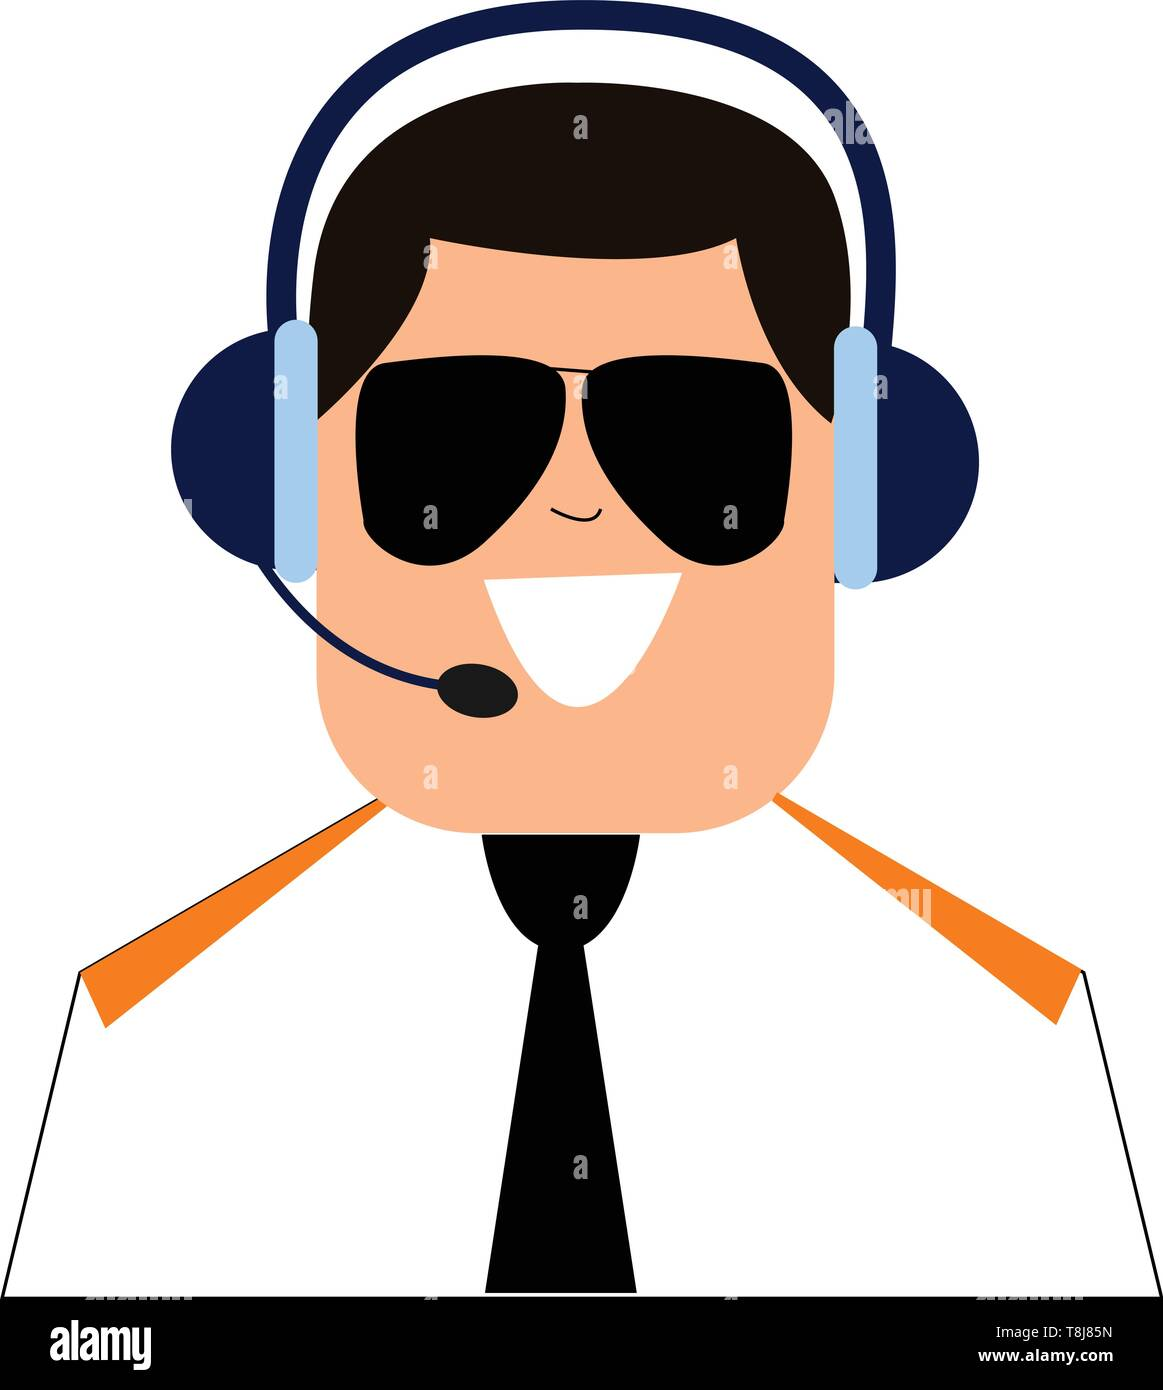 A pilot in his uniform talks through the headset and controls the airplane to provide safe and sound energy of the passengers and crews traveling in t Stock Vector